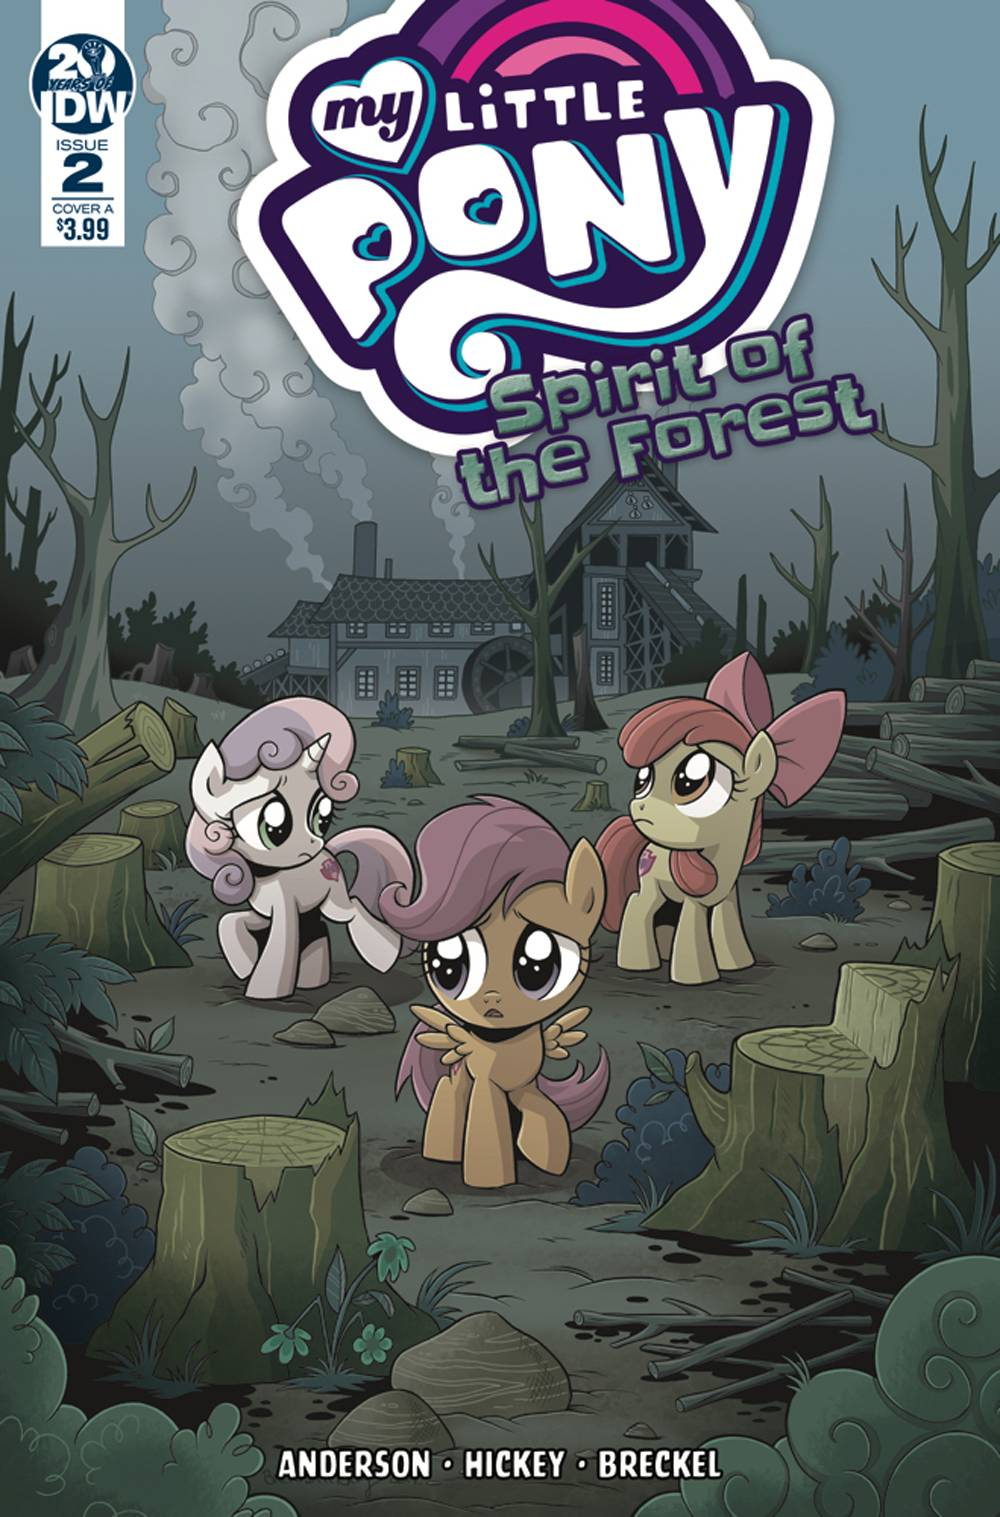 MY LITTLE PONY SPIRIT OF THE FOREST 2 of 3 CVR A HICKEY.jpg